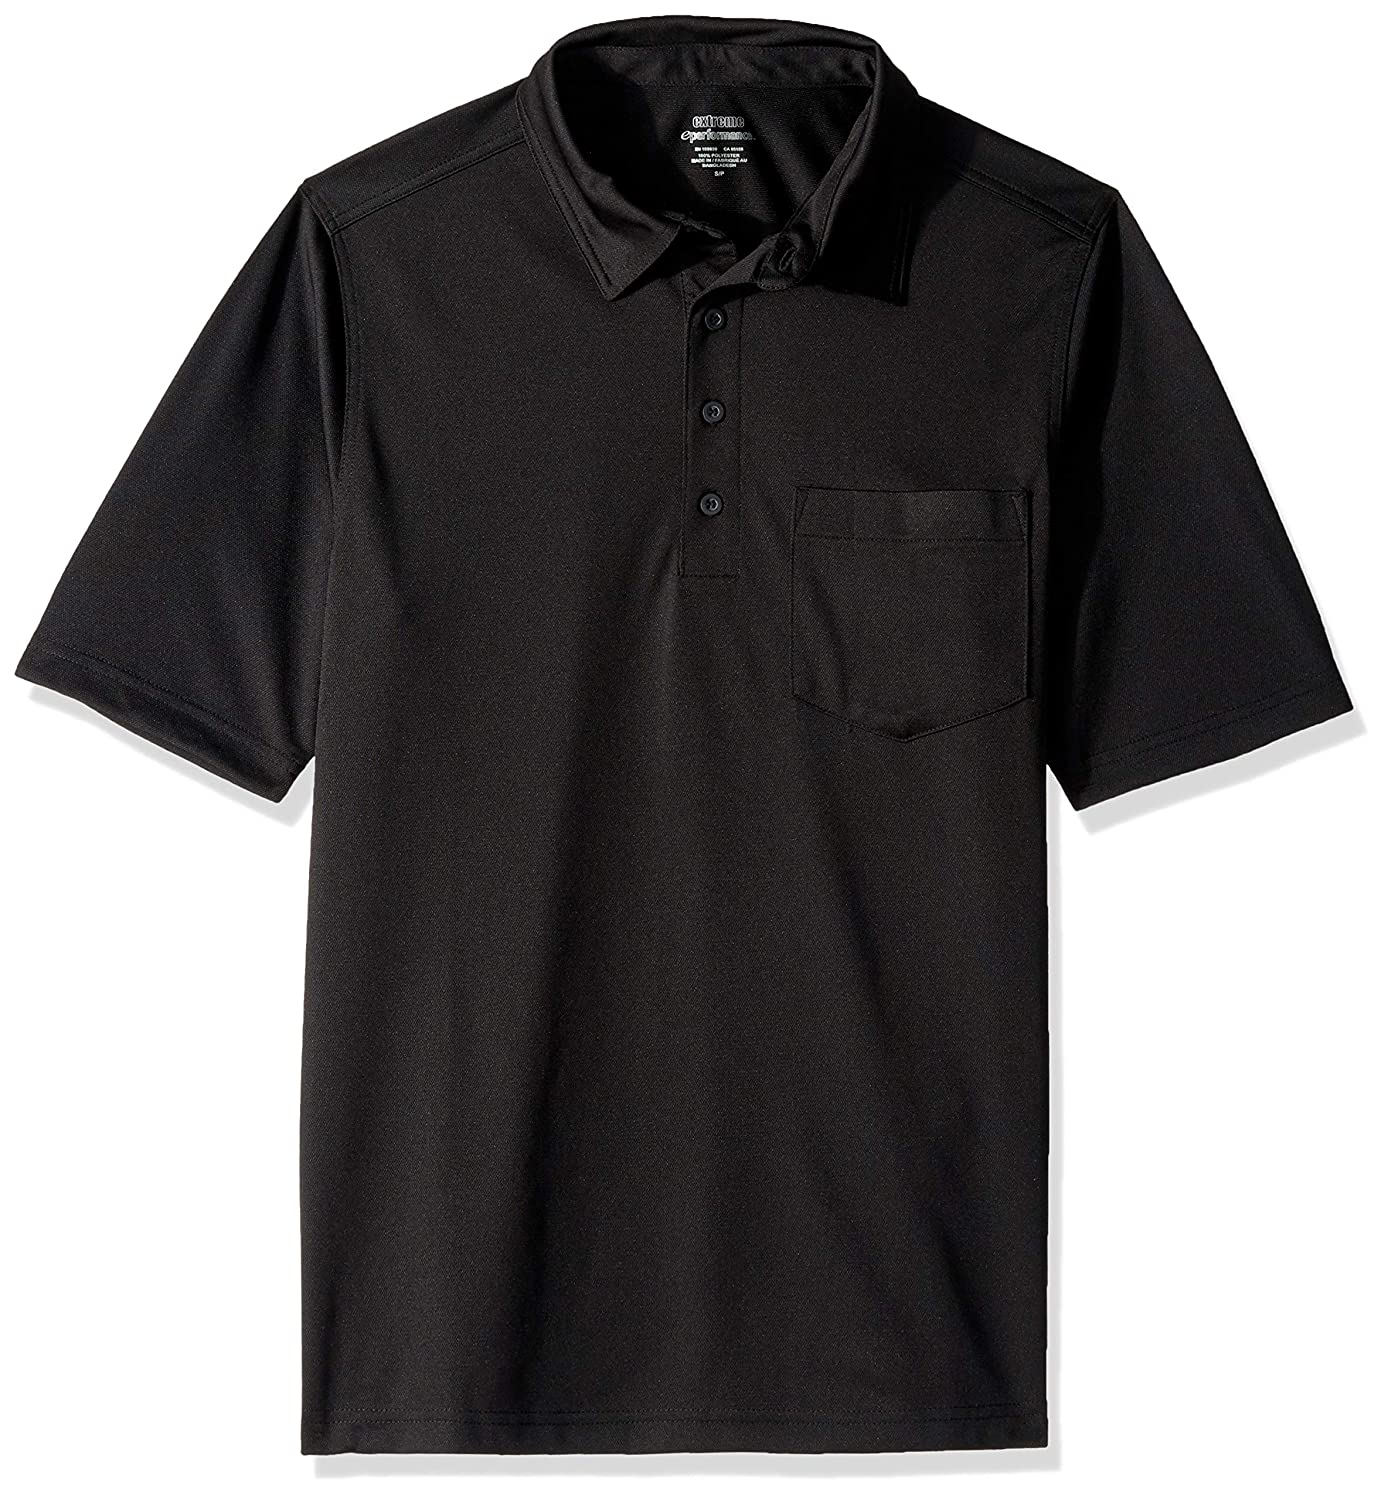 Ashe Xtream Mens Eperformance Shift Snag/ Protection Plus Polo